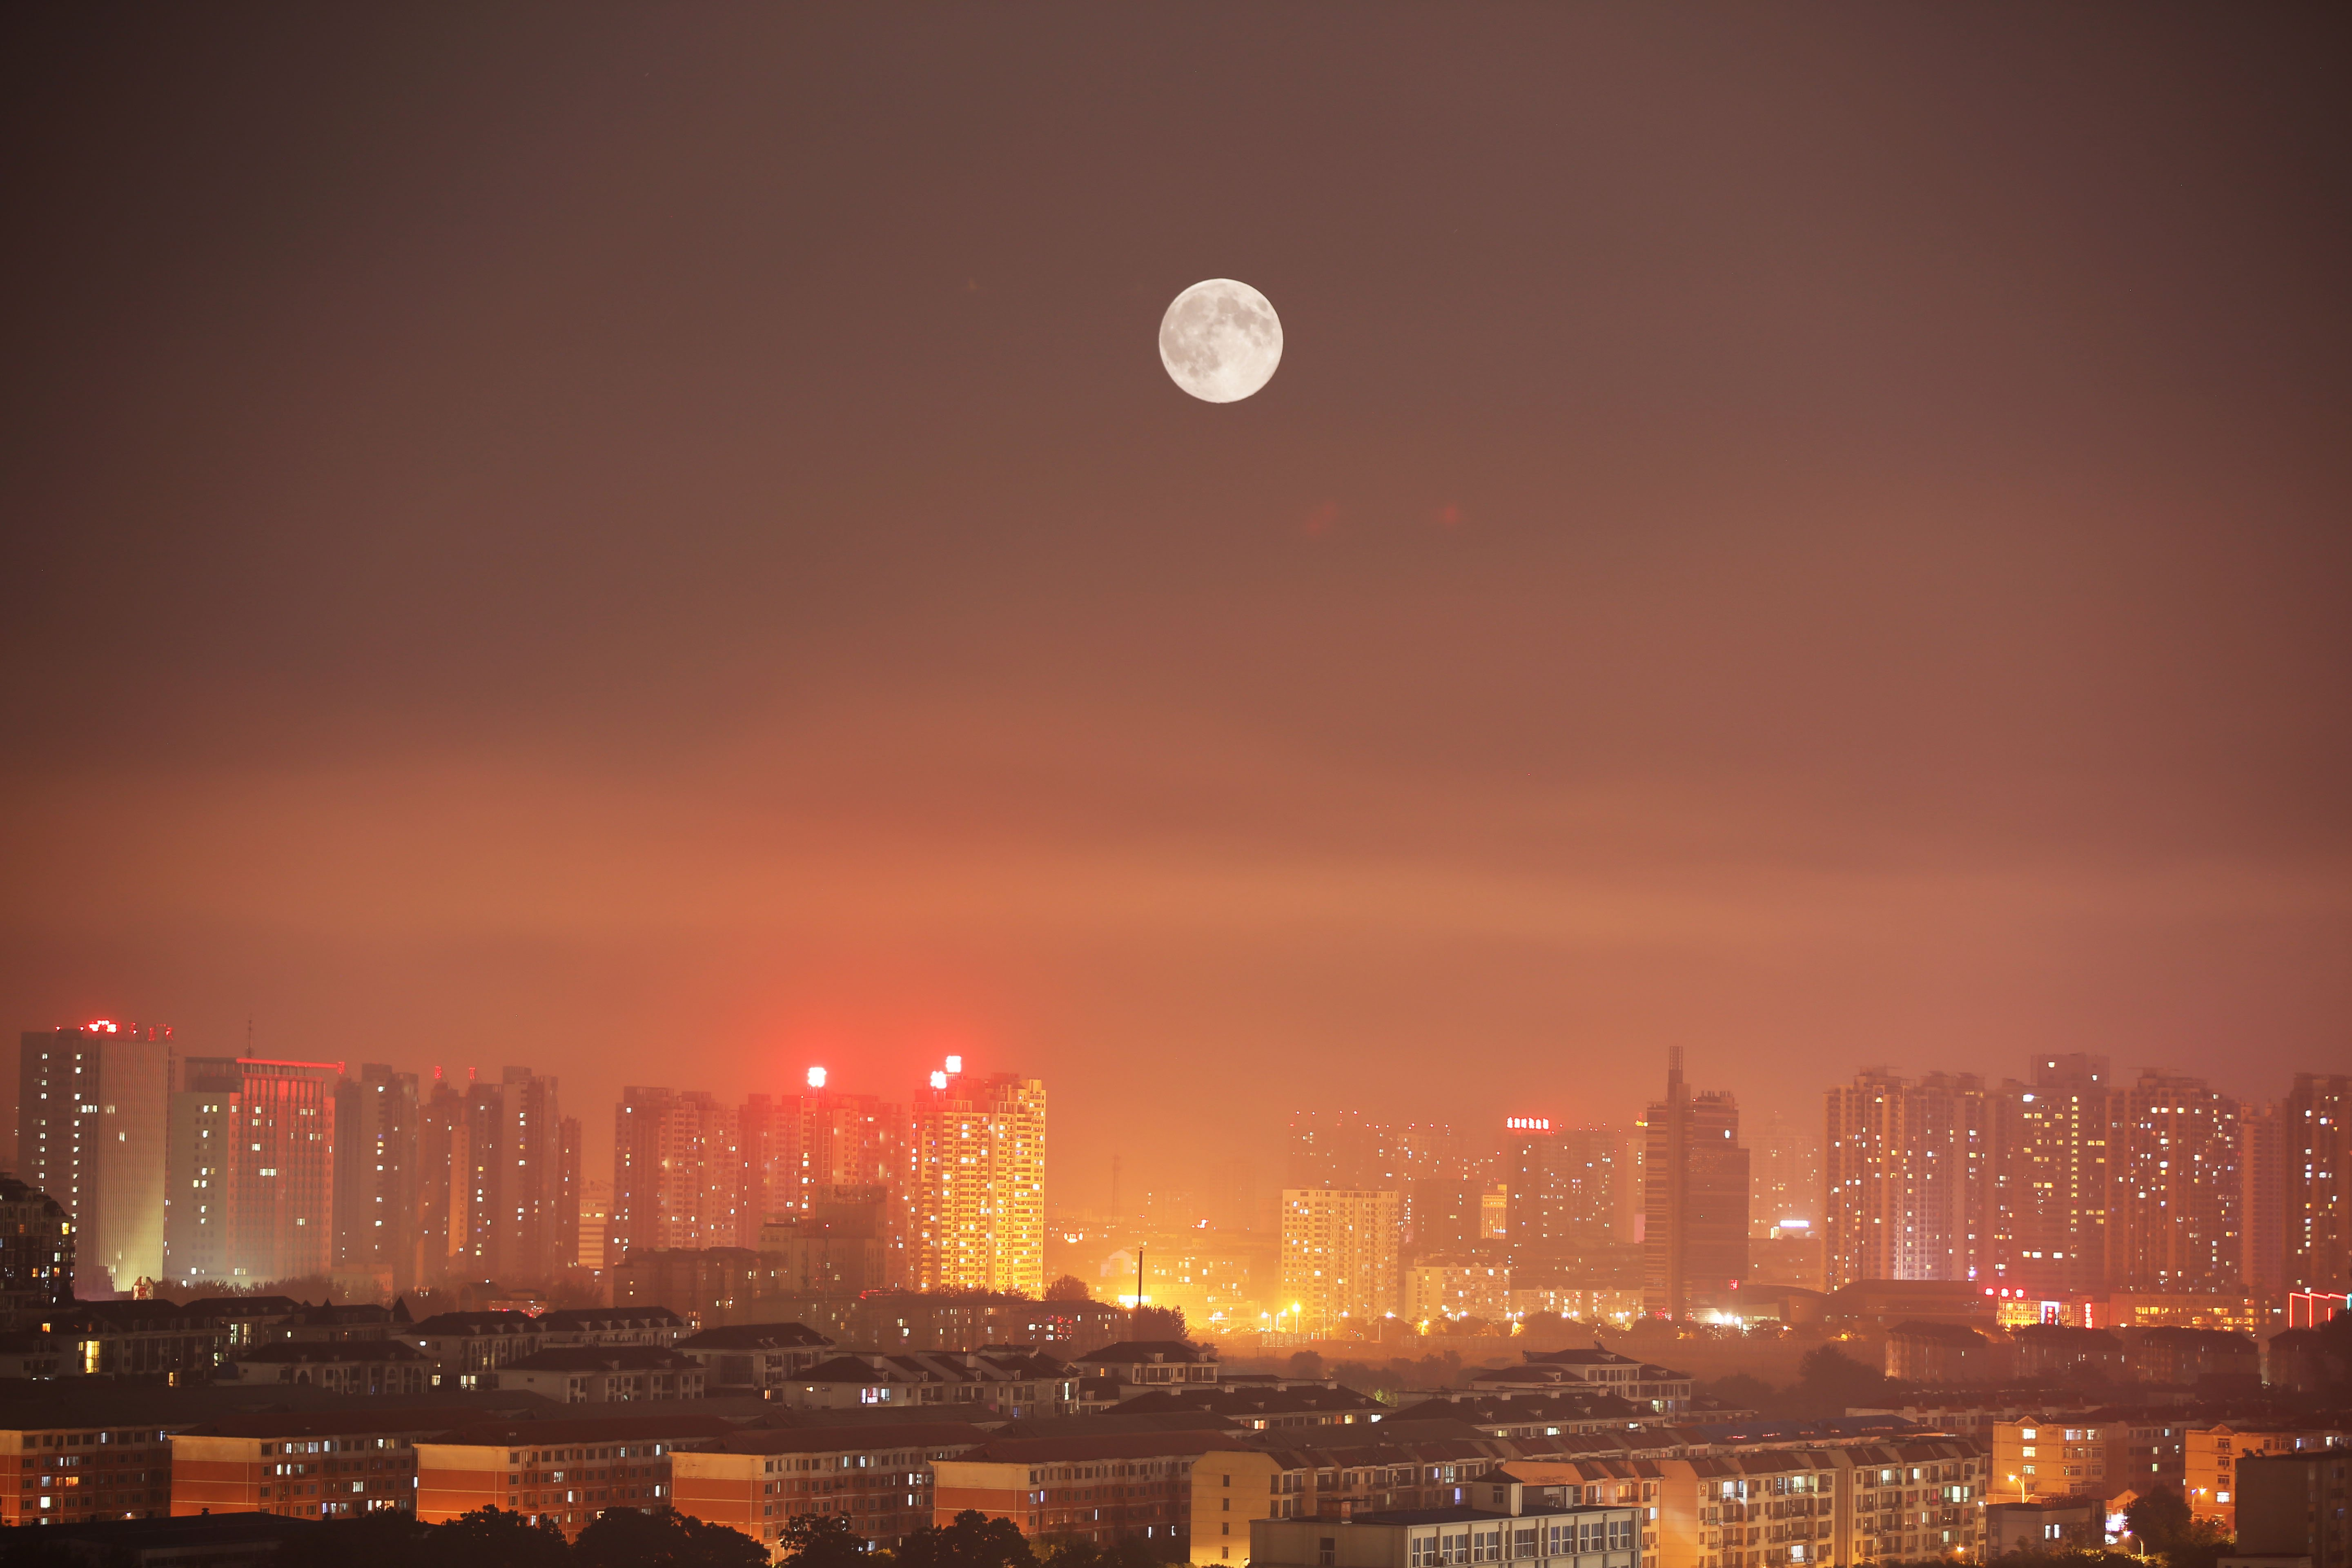 The Supermoon rises in Hebei, China on August 10, 2014.